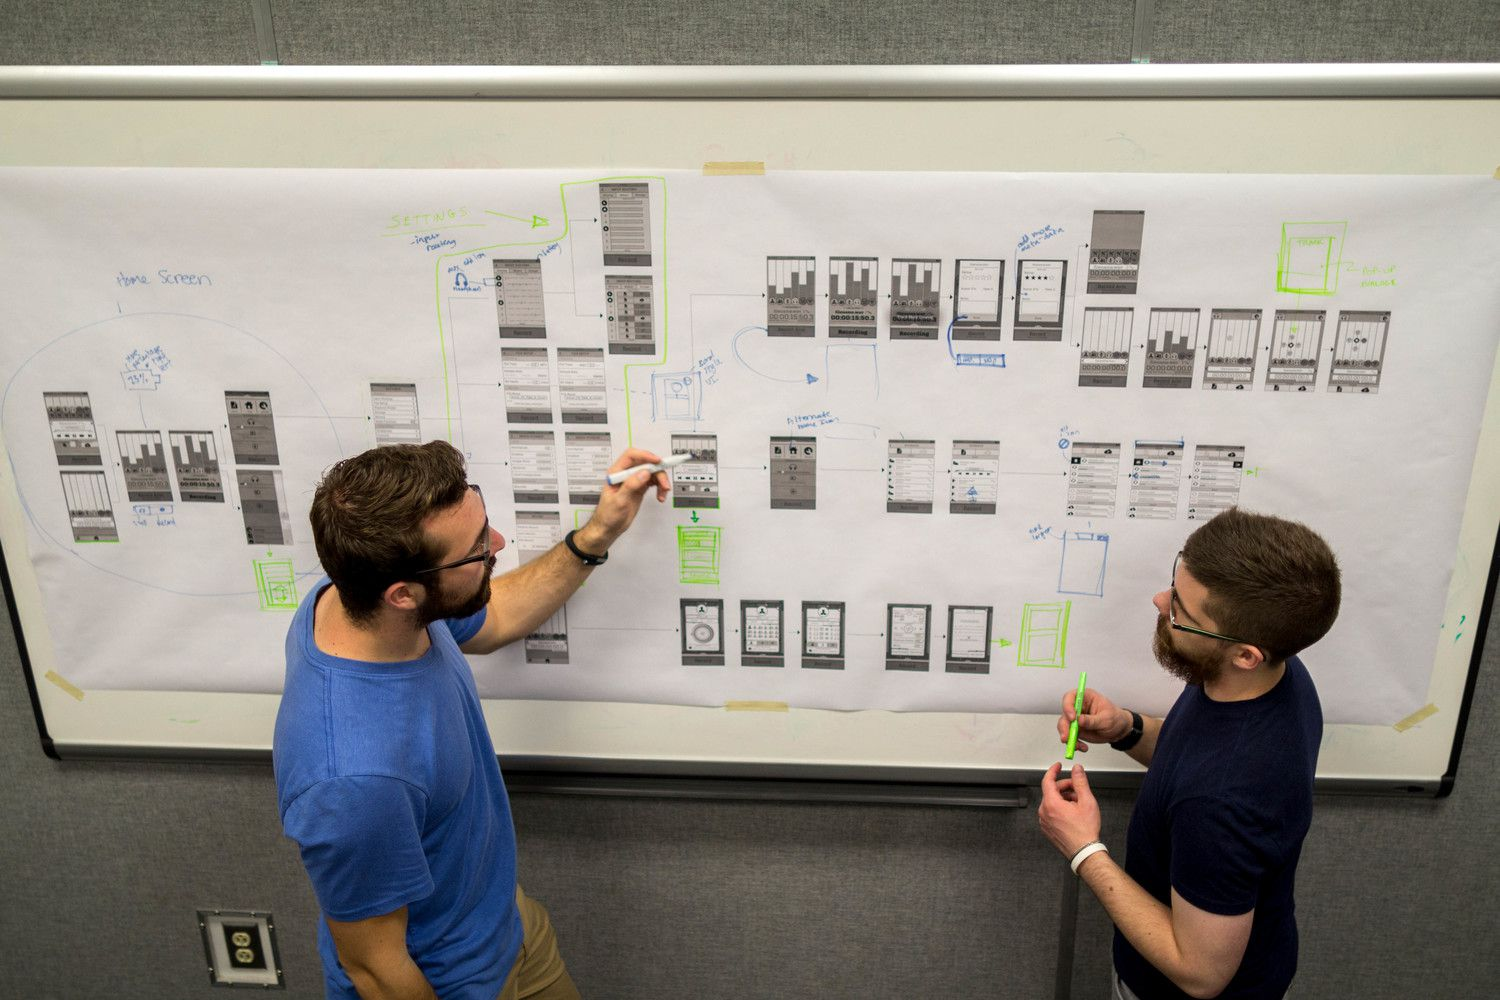 Designers Beney & Brownhill critiquing the wireframe flow based on user feedback.